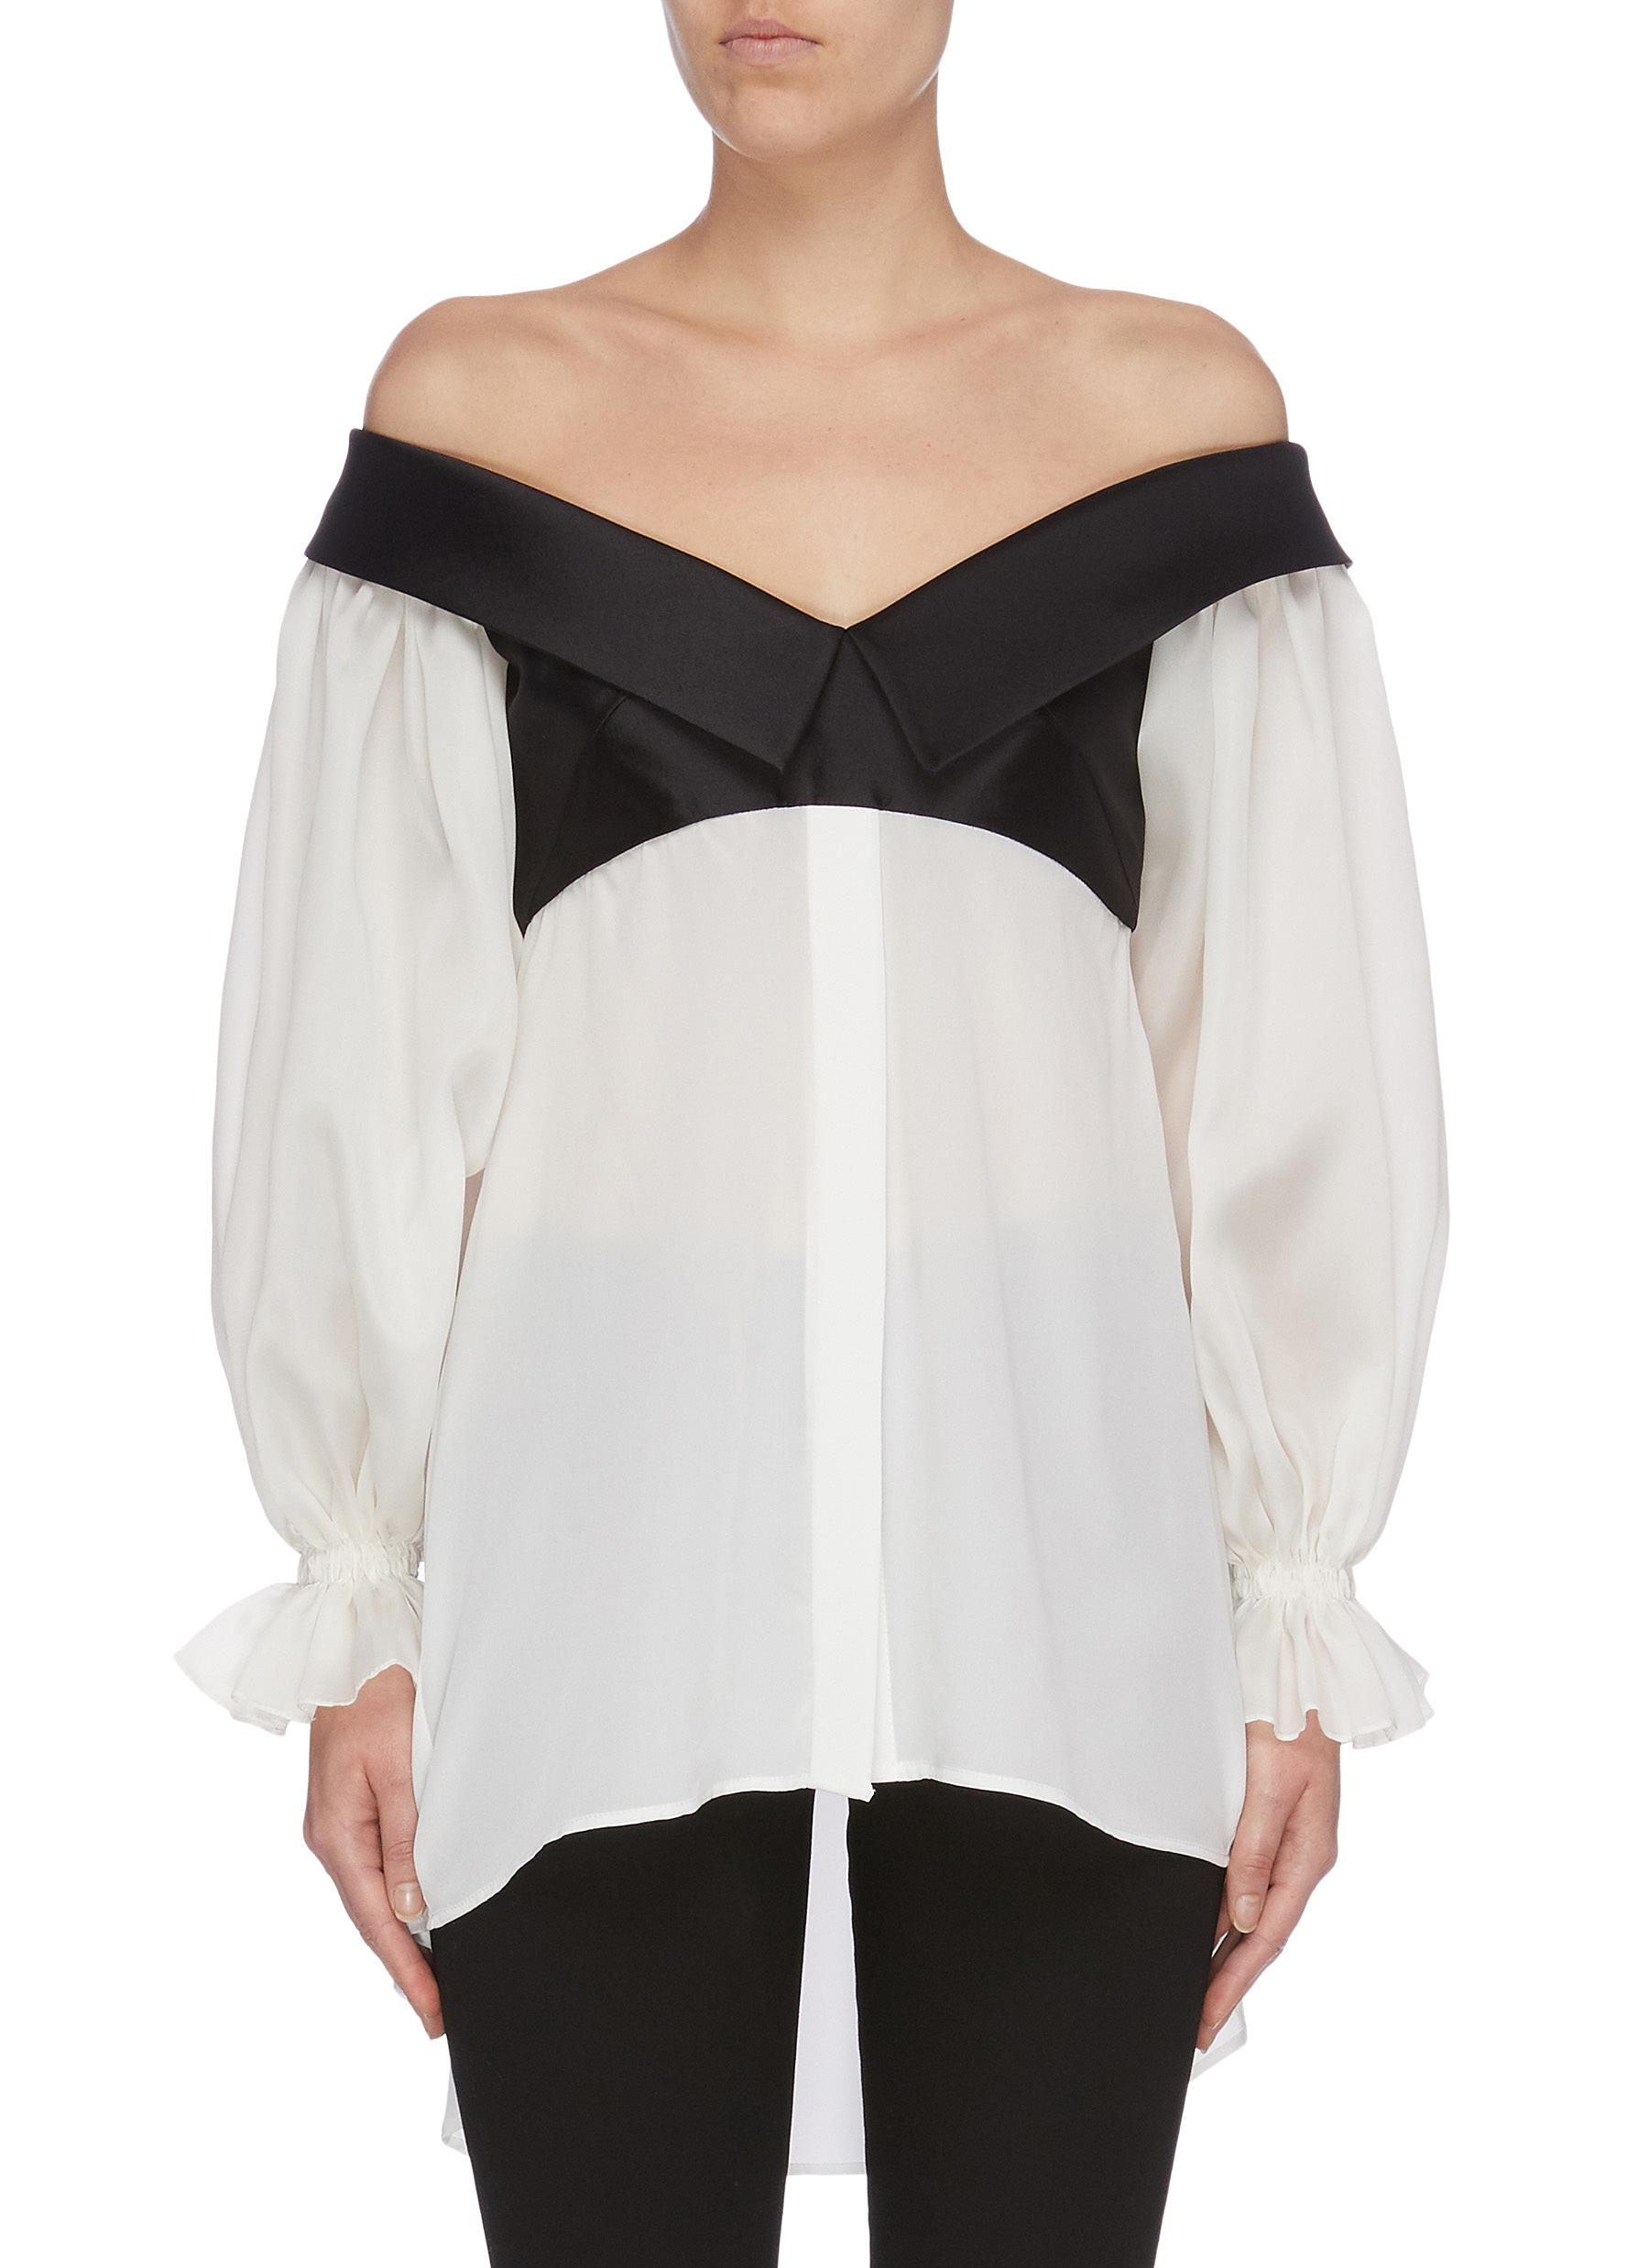 Carla satin collar panel balloon sleeve off-shoulder top by Leal Daccarett